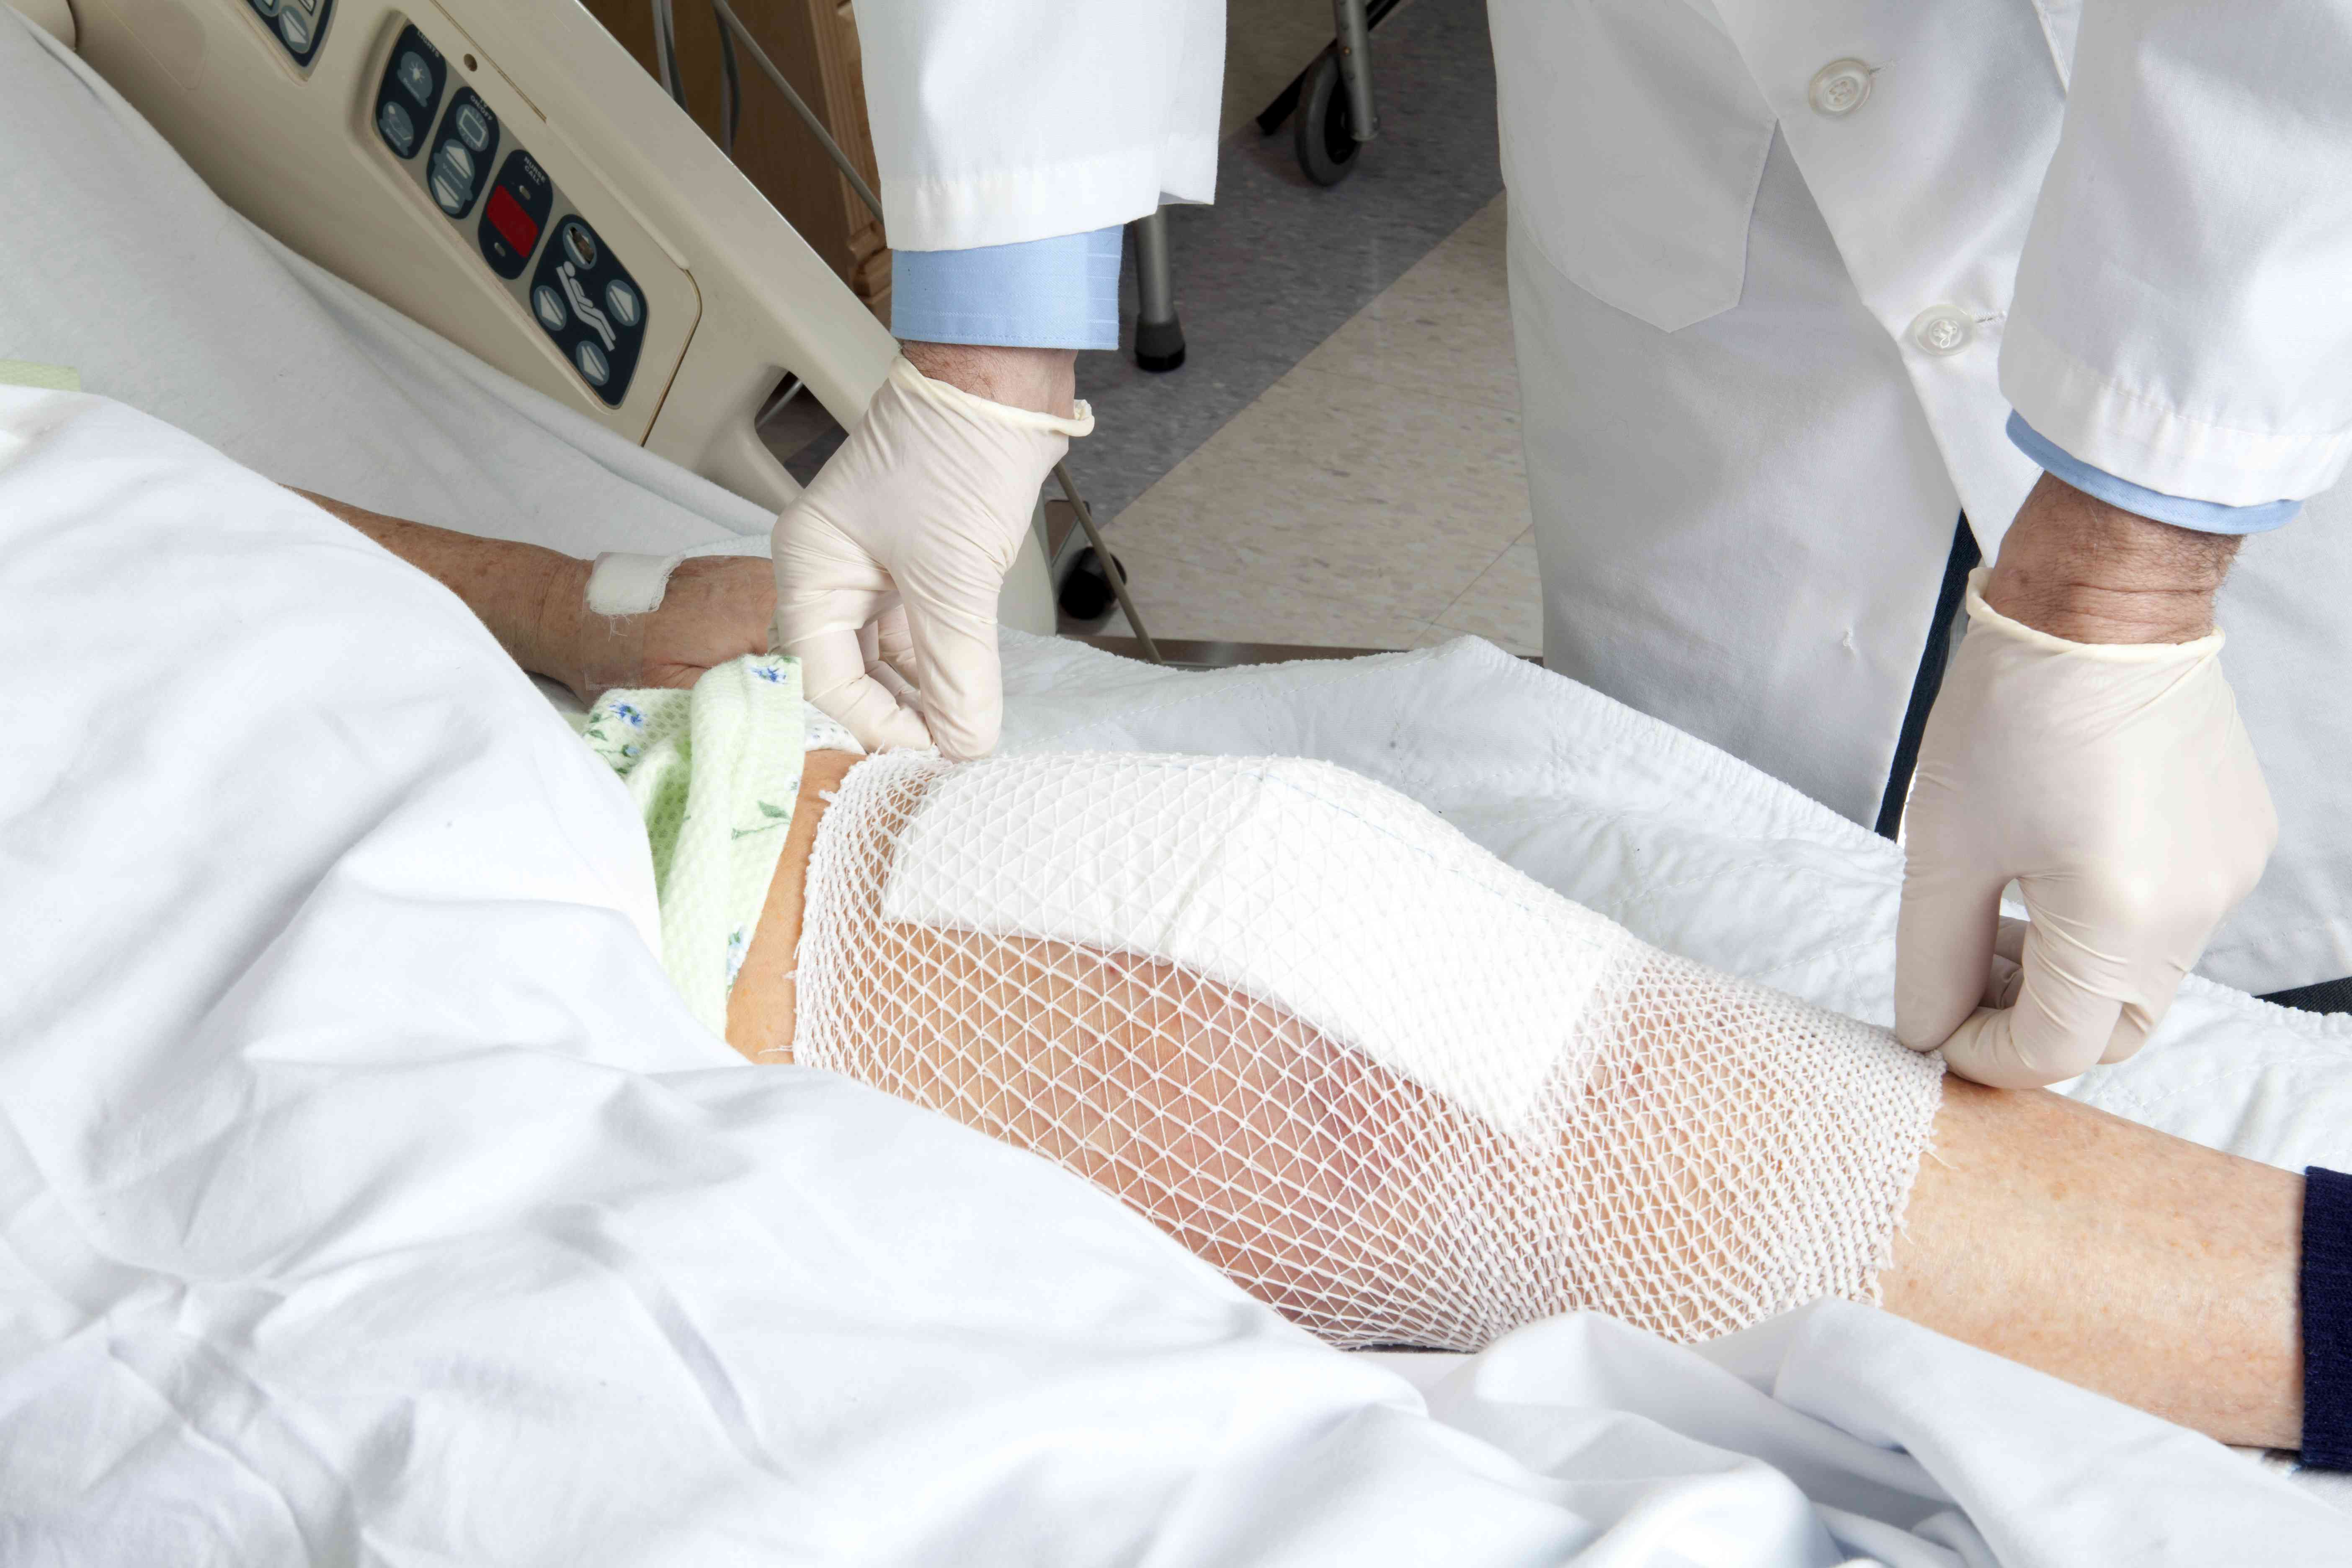 Knee replacement bandage on person in hospital bed